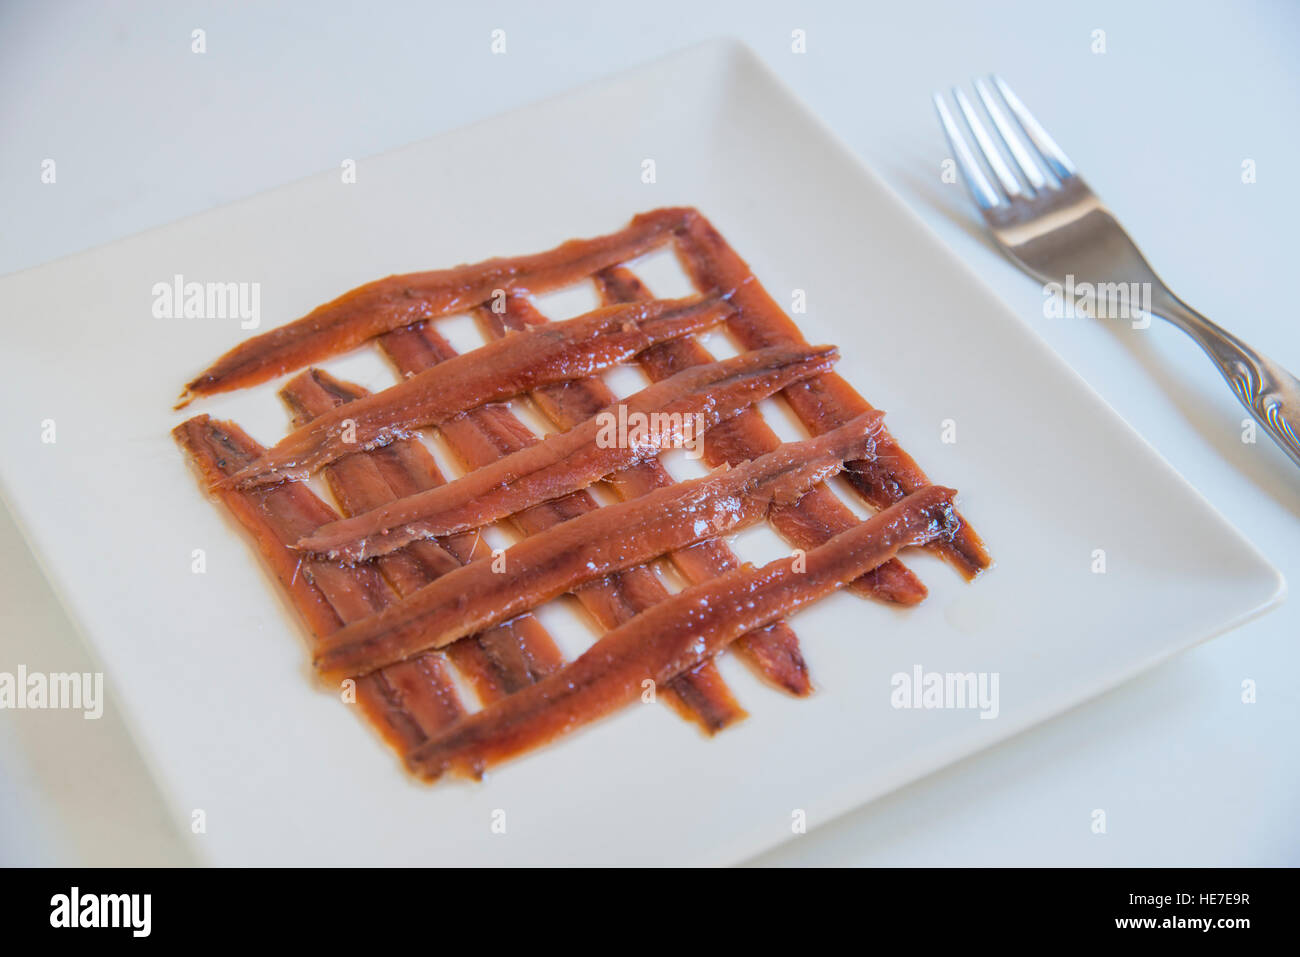 Anchovy fillets. - Stock Image